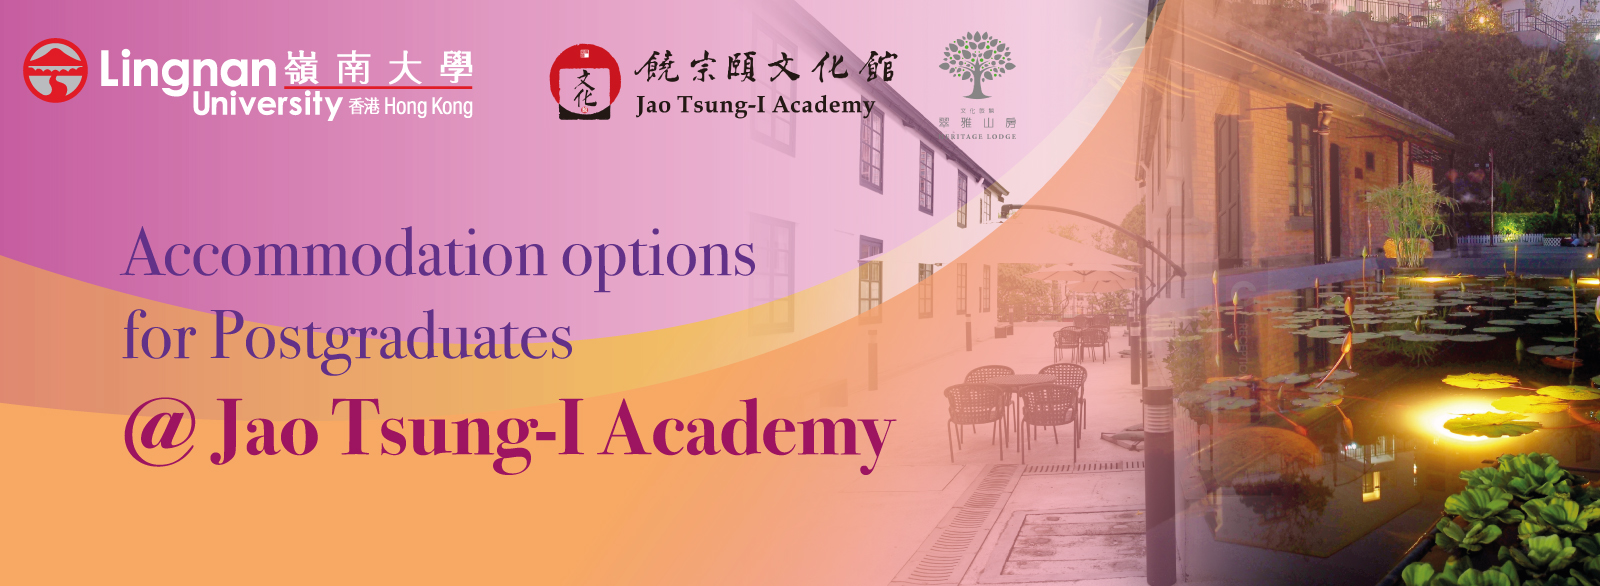 Accommodation options for Postgraduates @ Jao Tsung-I Academy